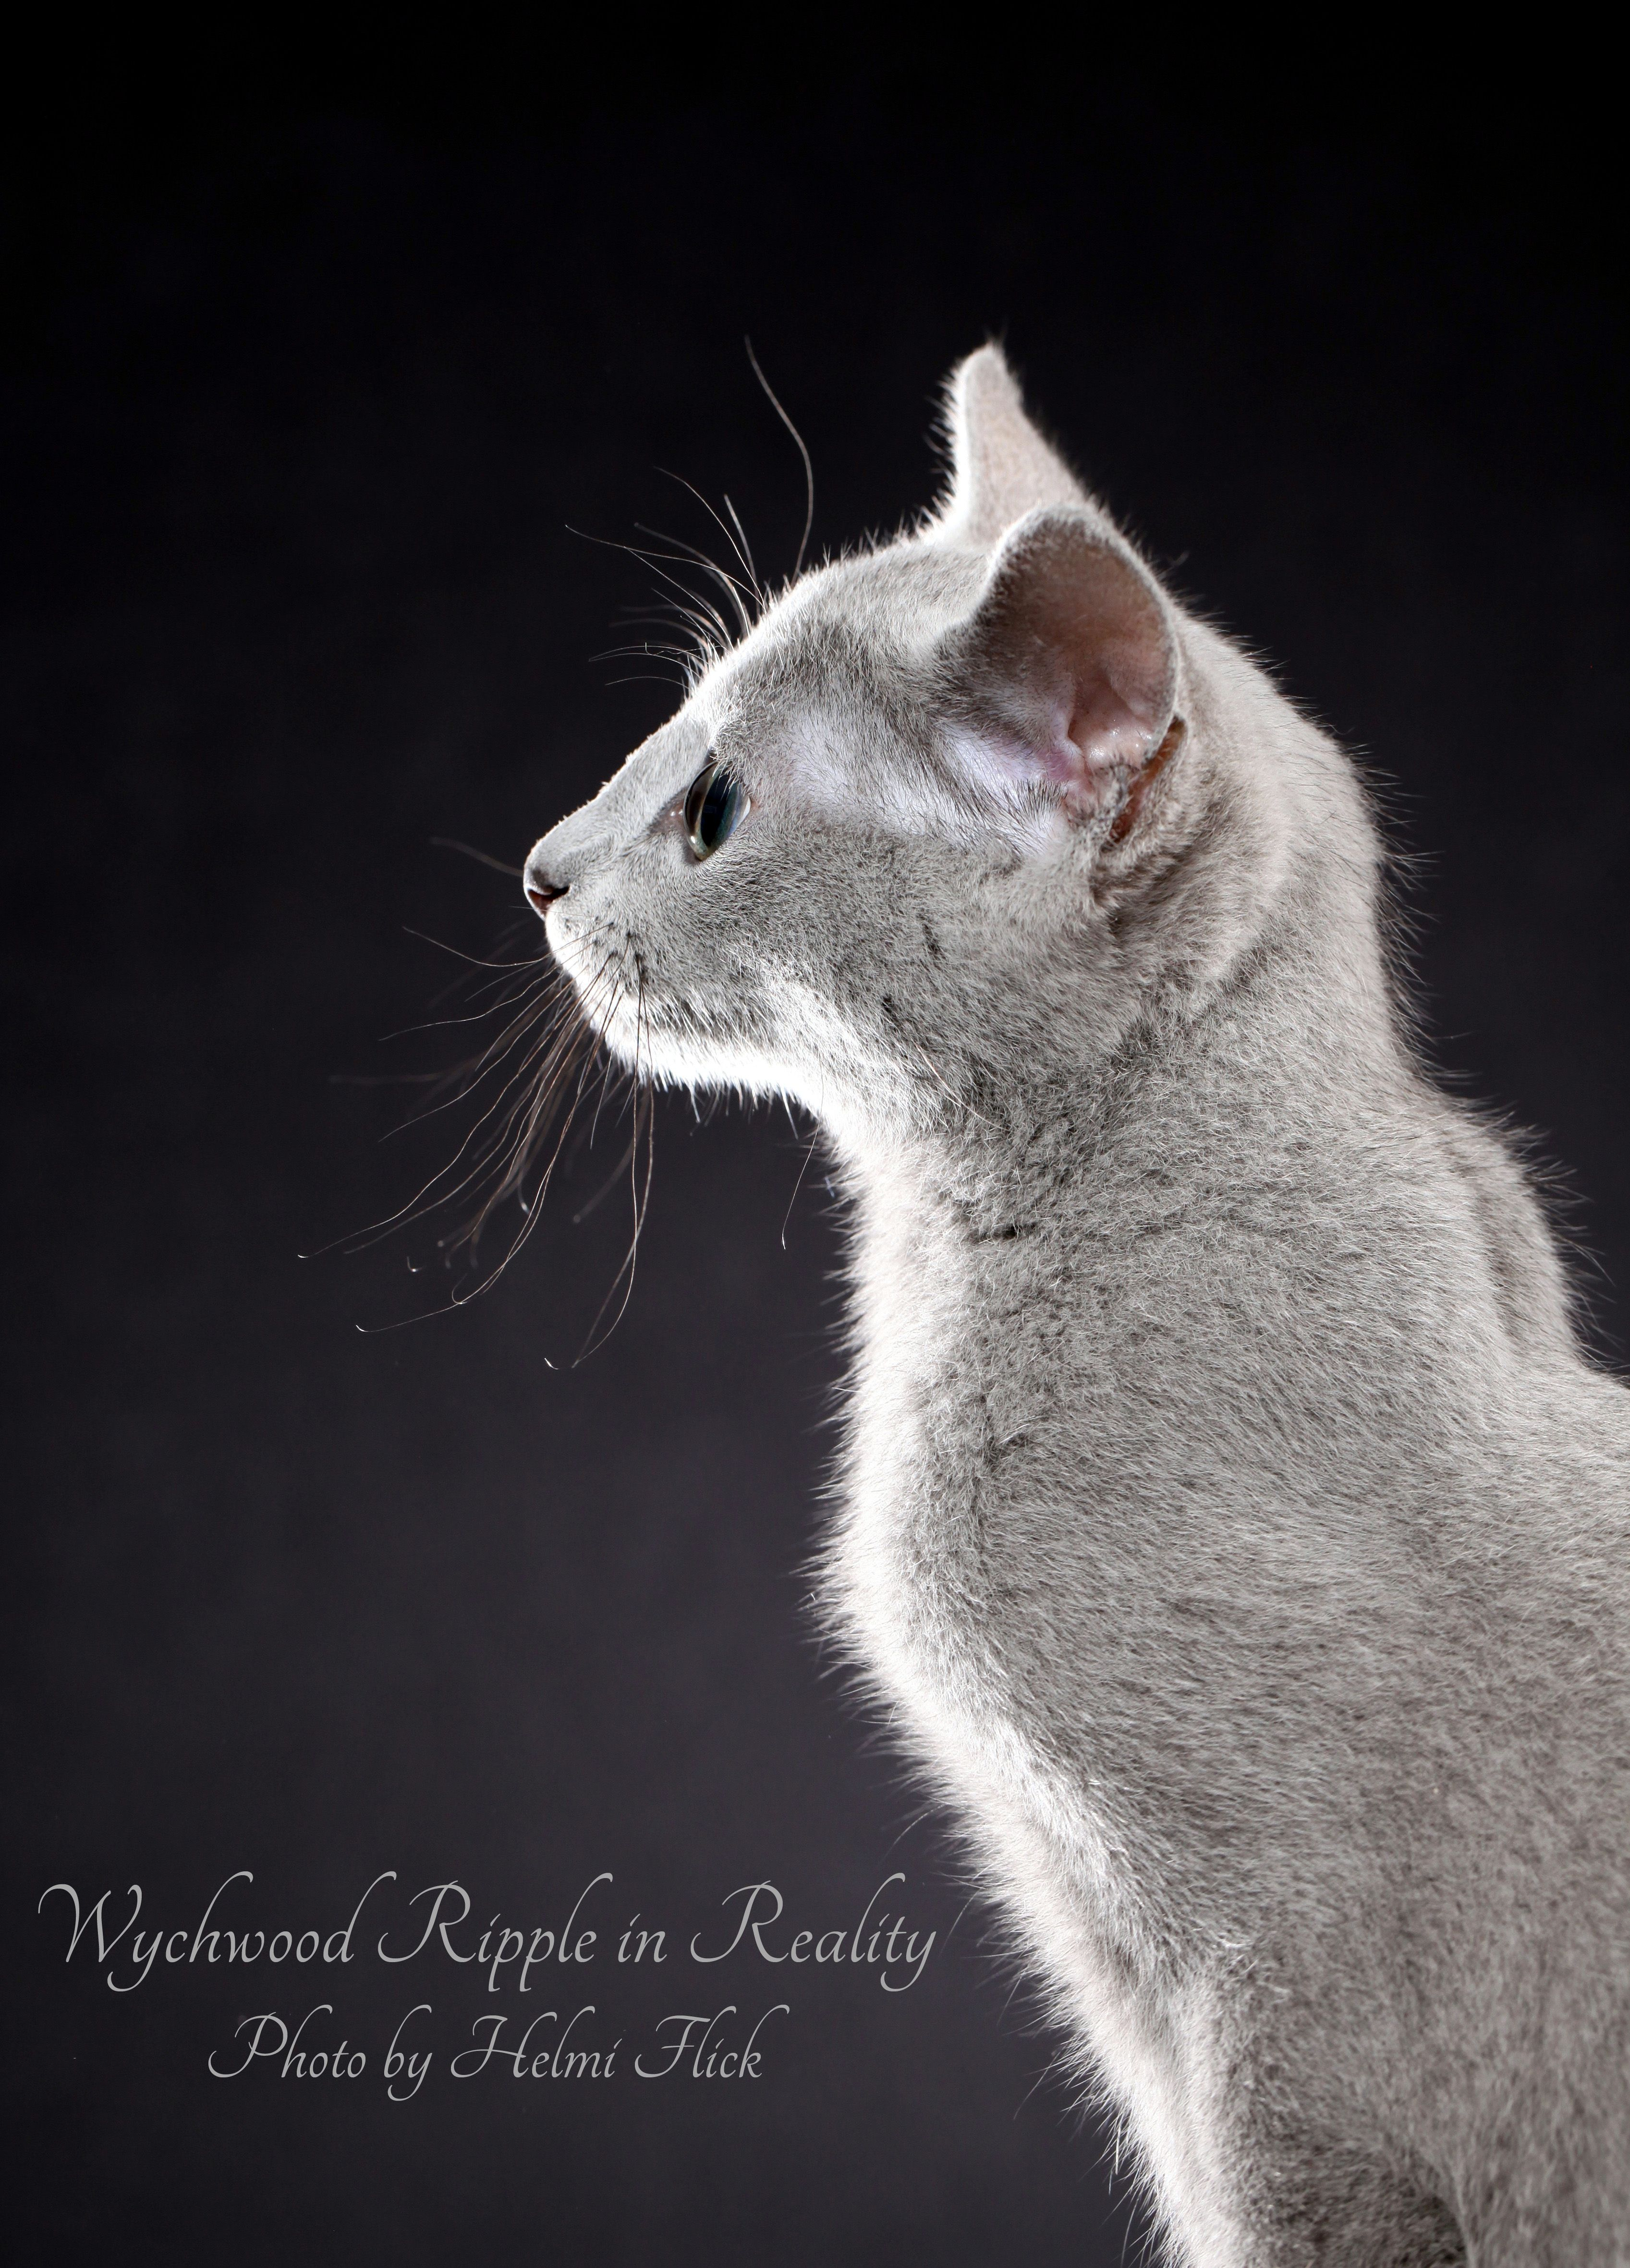 Wychwood Ripple in Reality's profile. The nose line of a Russian Blue cat should be ruler straight. Breeders strive for perfection, and every generation should be a step closer to their breed standard. Photo by Helmi Flick